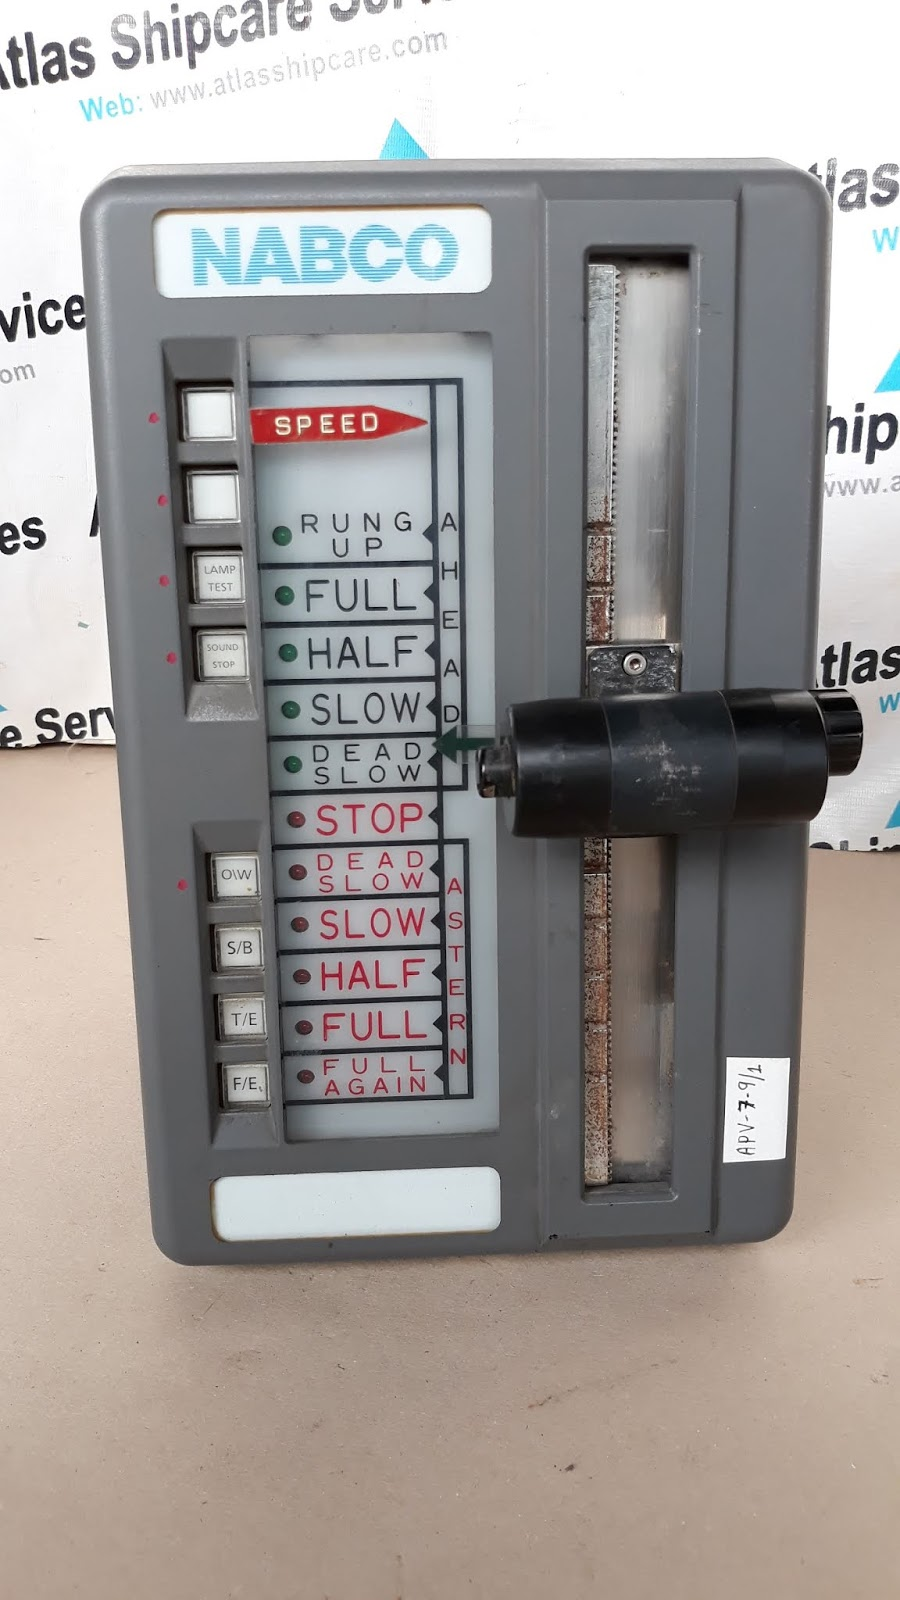 hight resolution of nabco telegraph mt 800 2